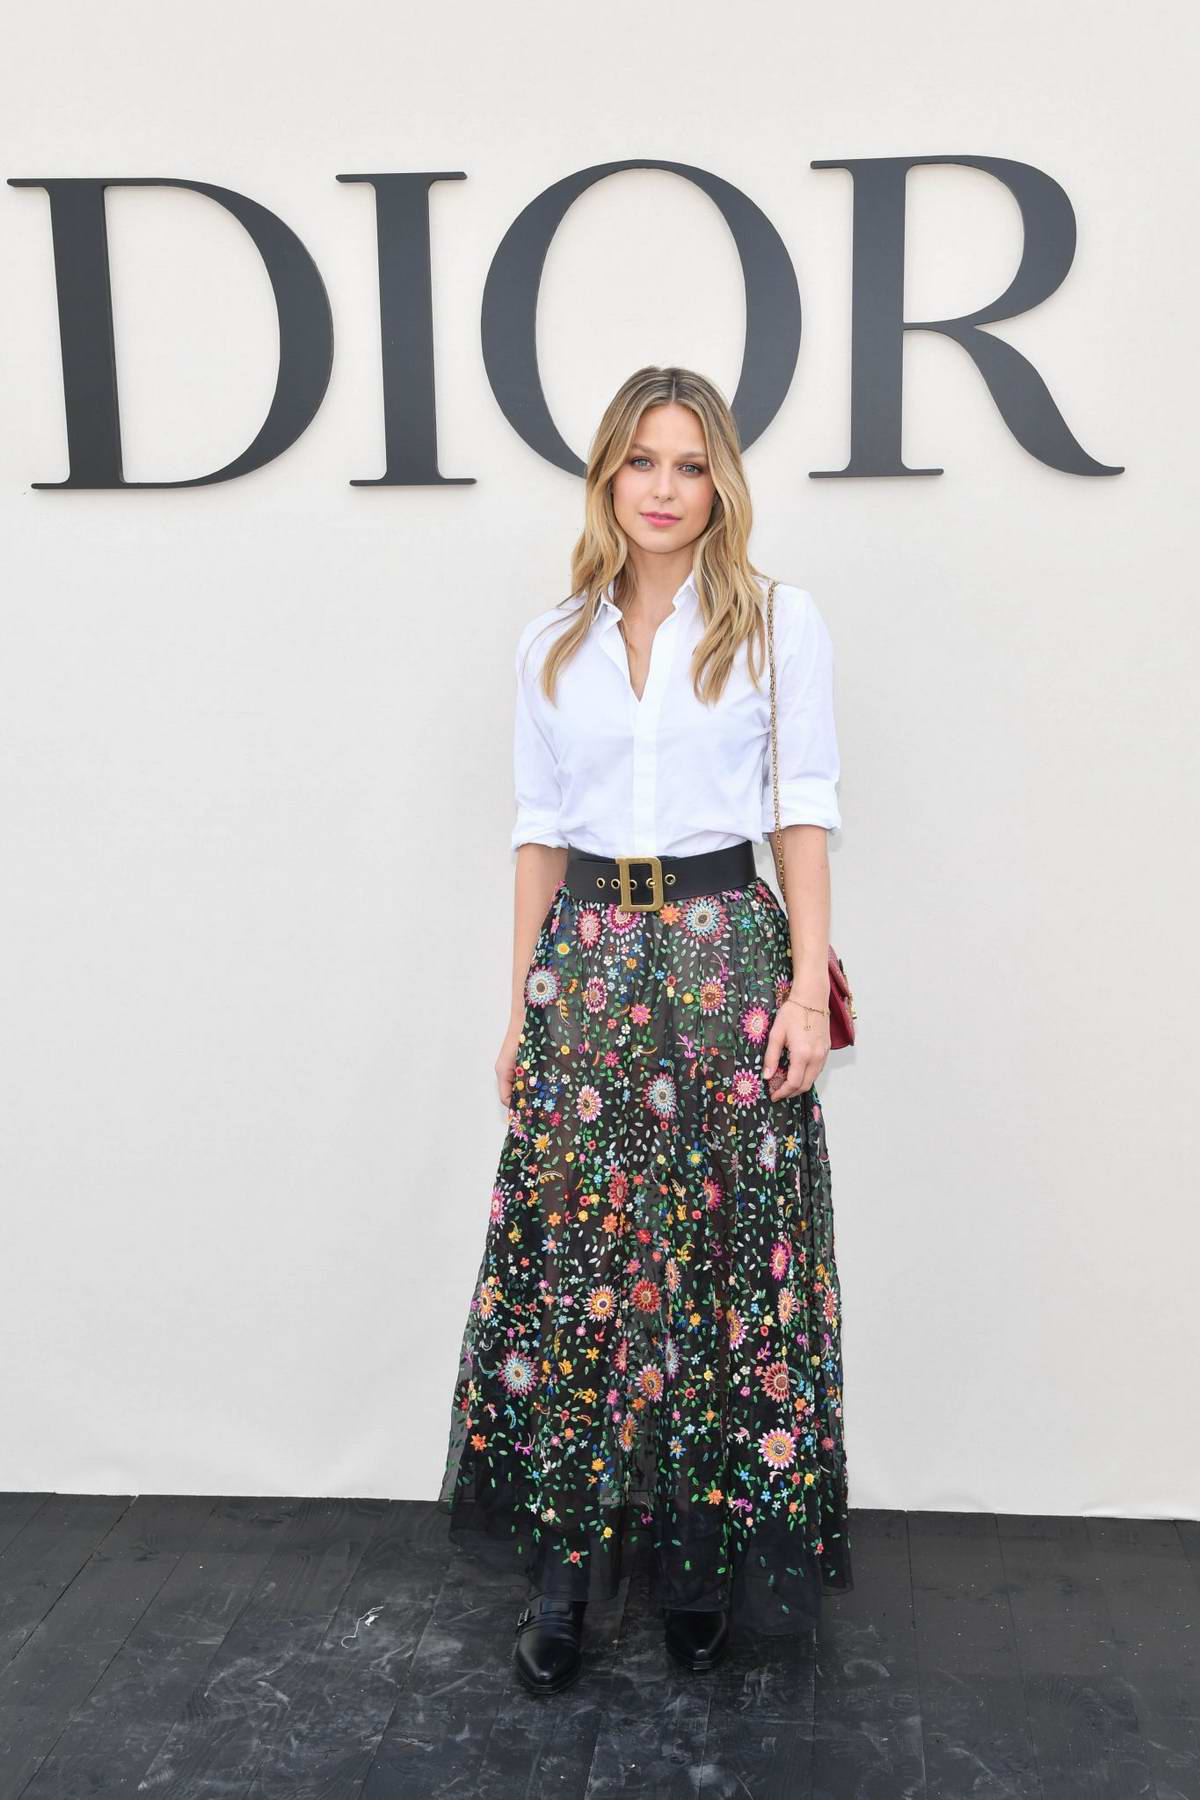 Melissa Benoist attends the Christian Dior Show during Paris Fashion Week in Paris, France